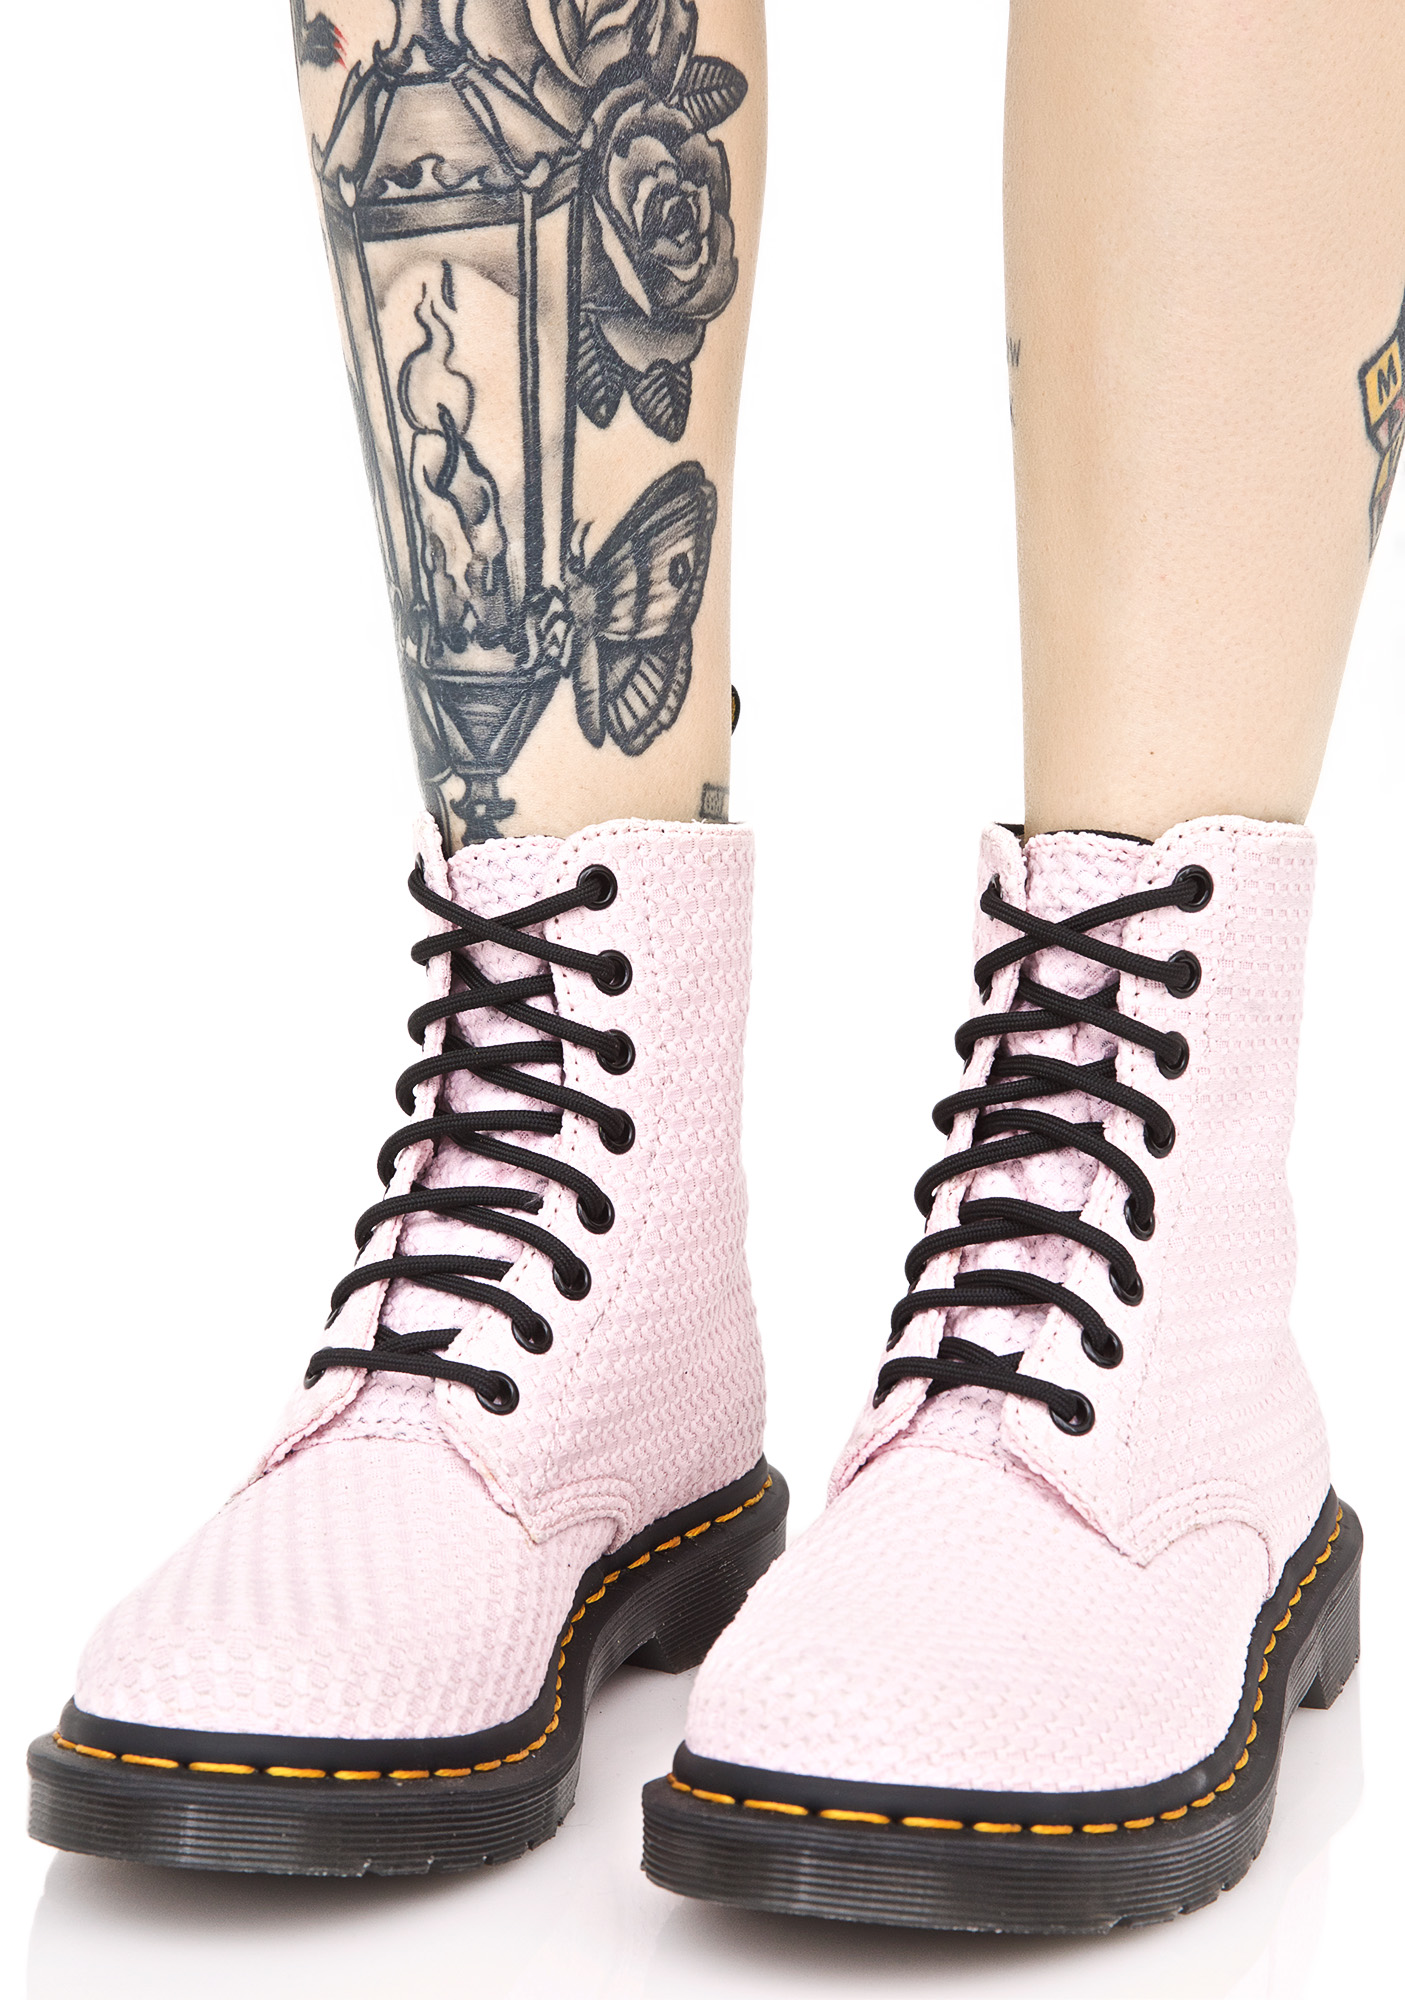 Dr. Martens Page 1460 Boots